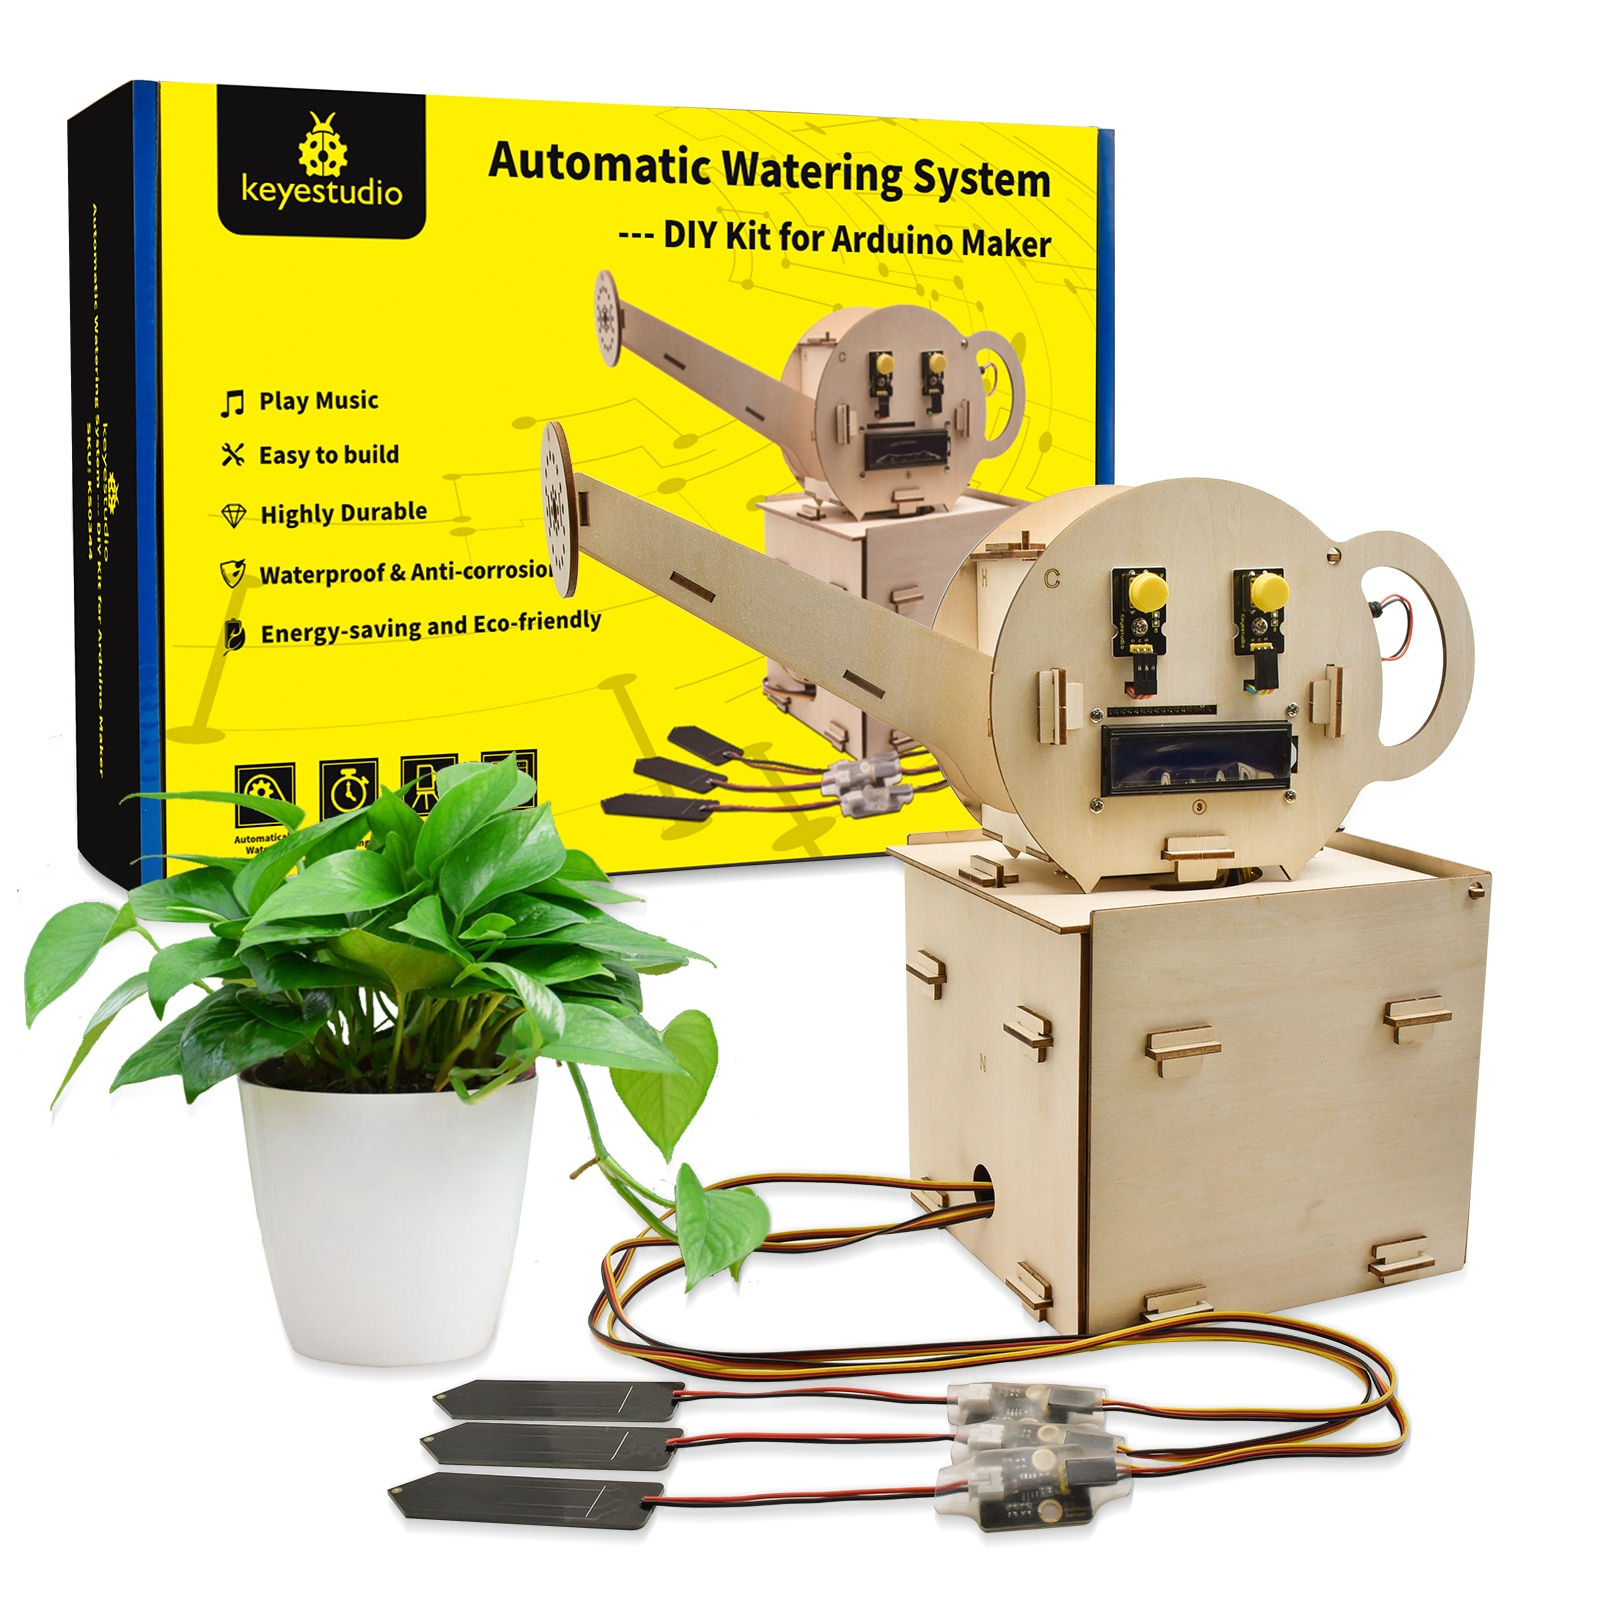 Keyestudio Automatic Watering Flower System Suit Programming Kit for Arduino Starter Kit DIY Projects